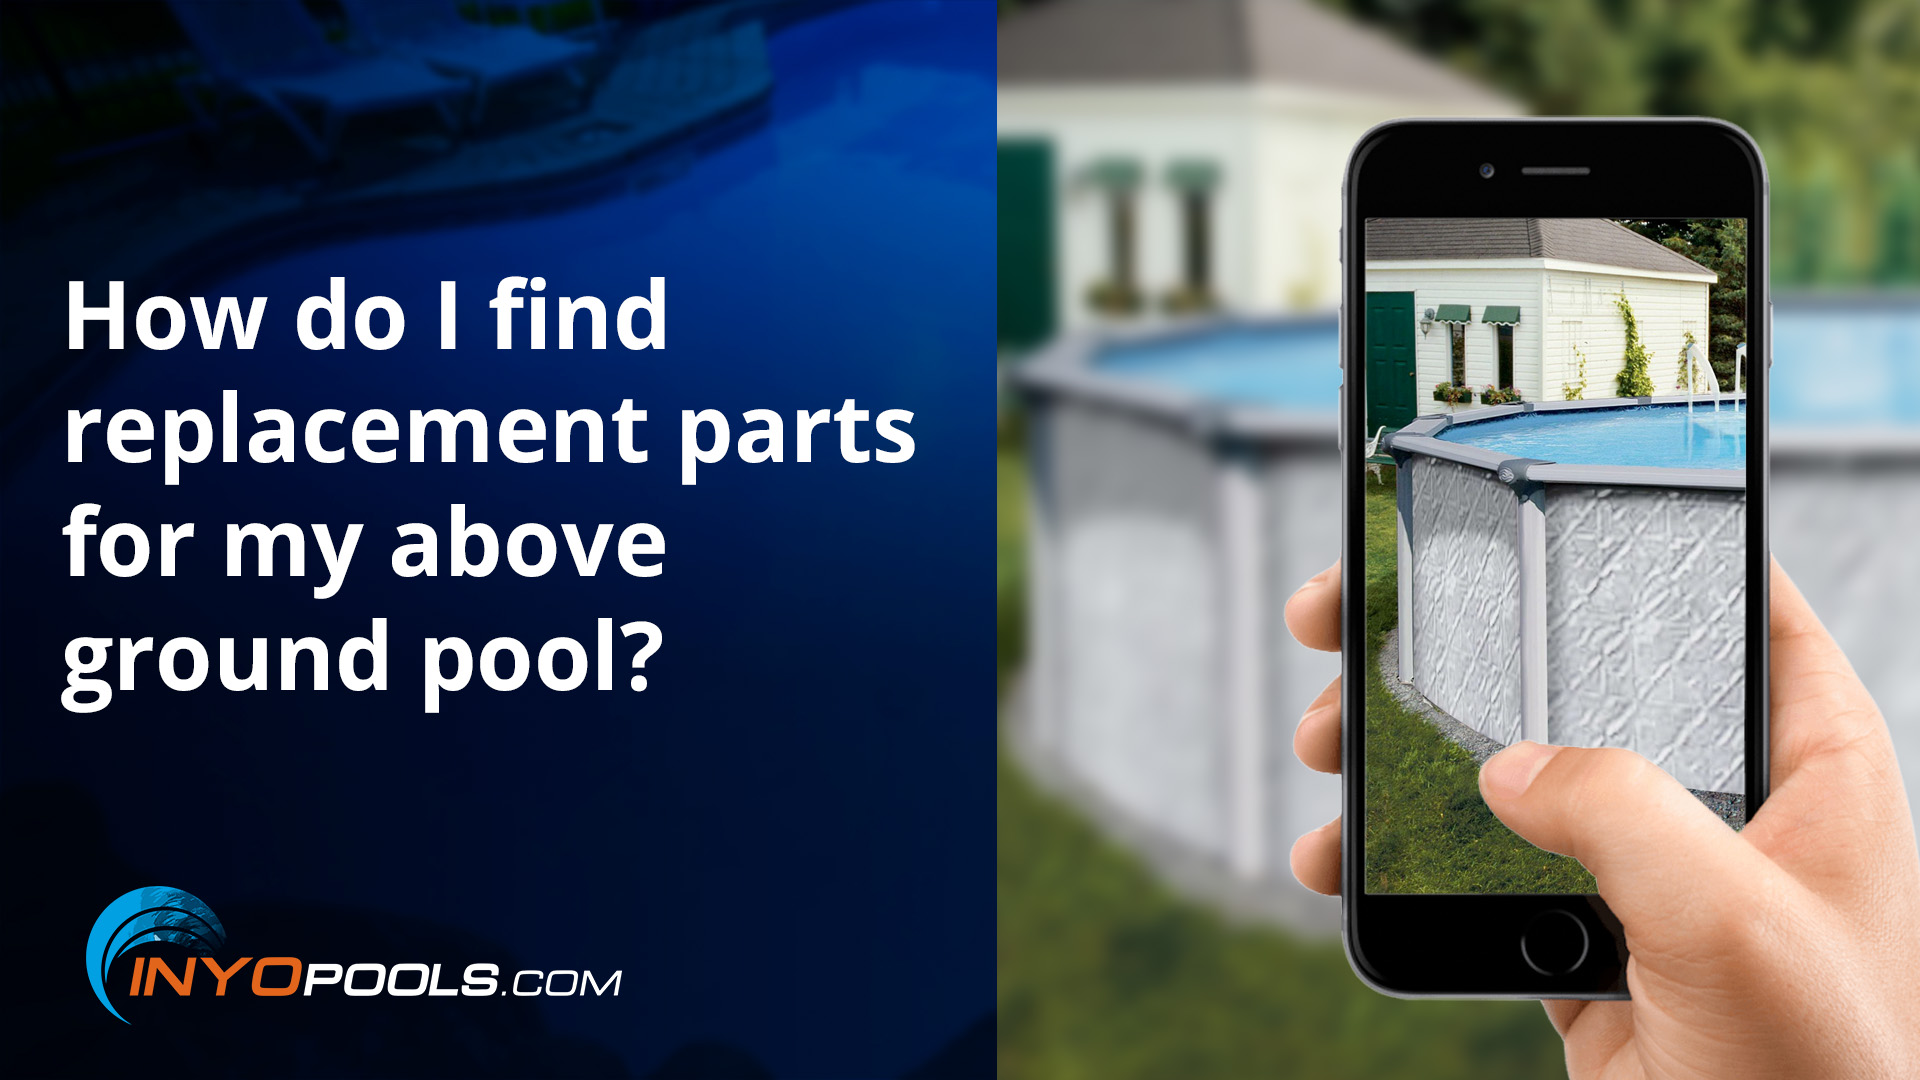 How do I find replacement parts for my above ground pool?